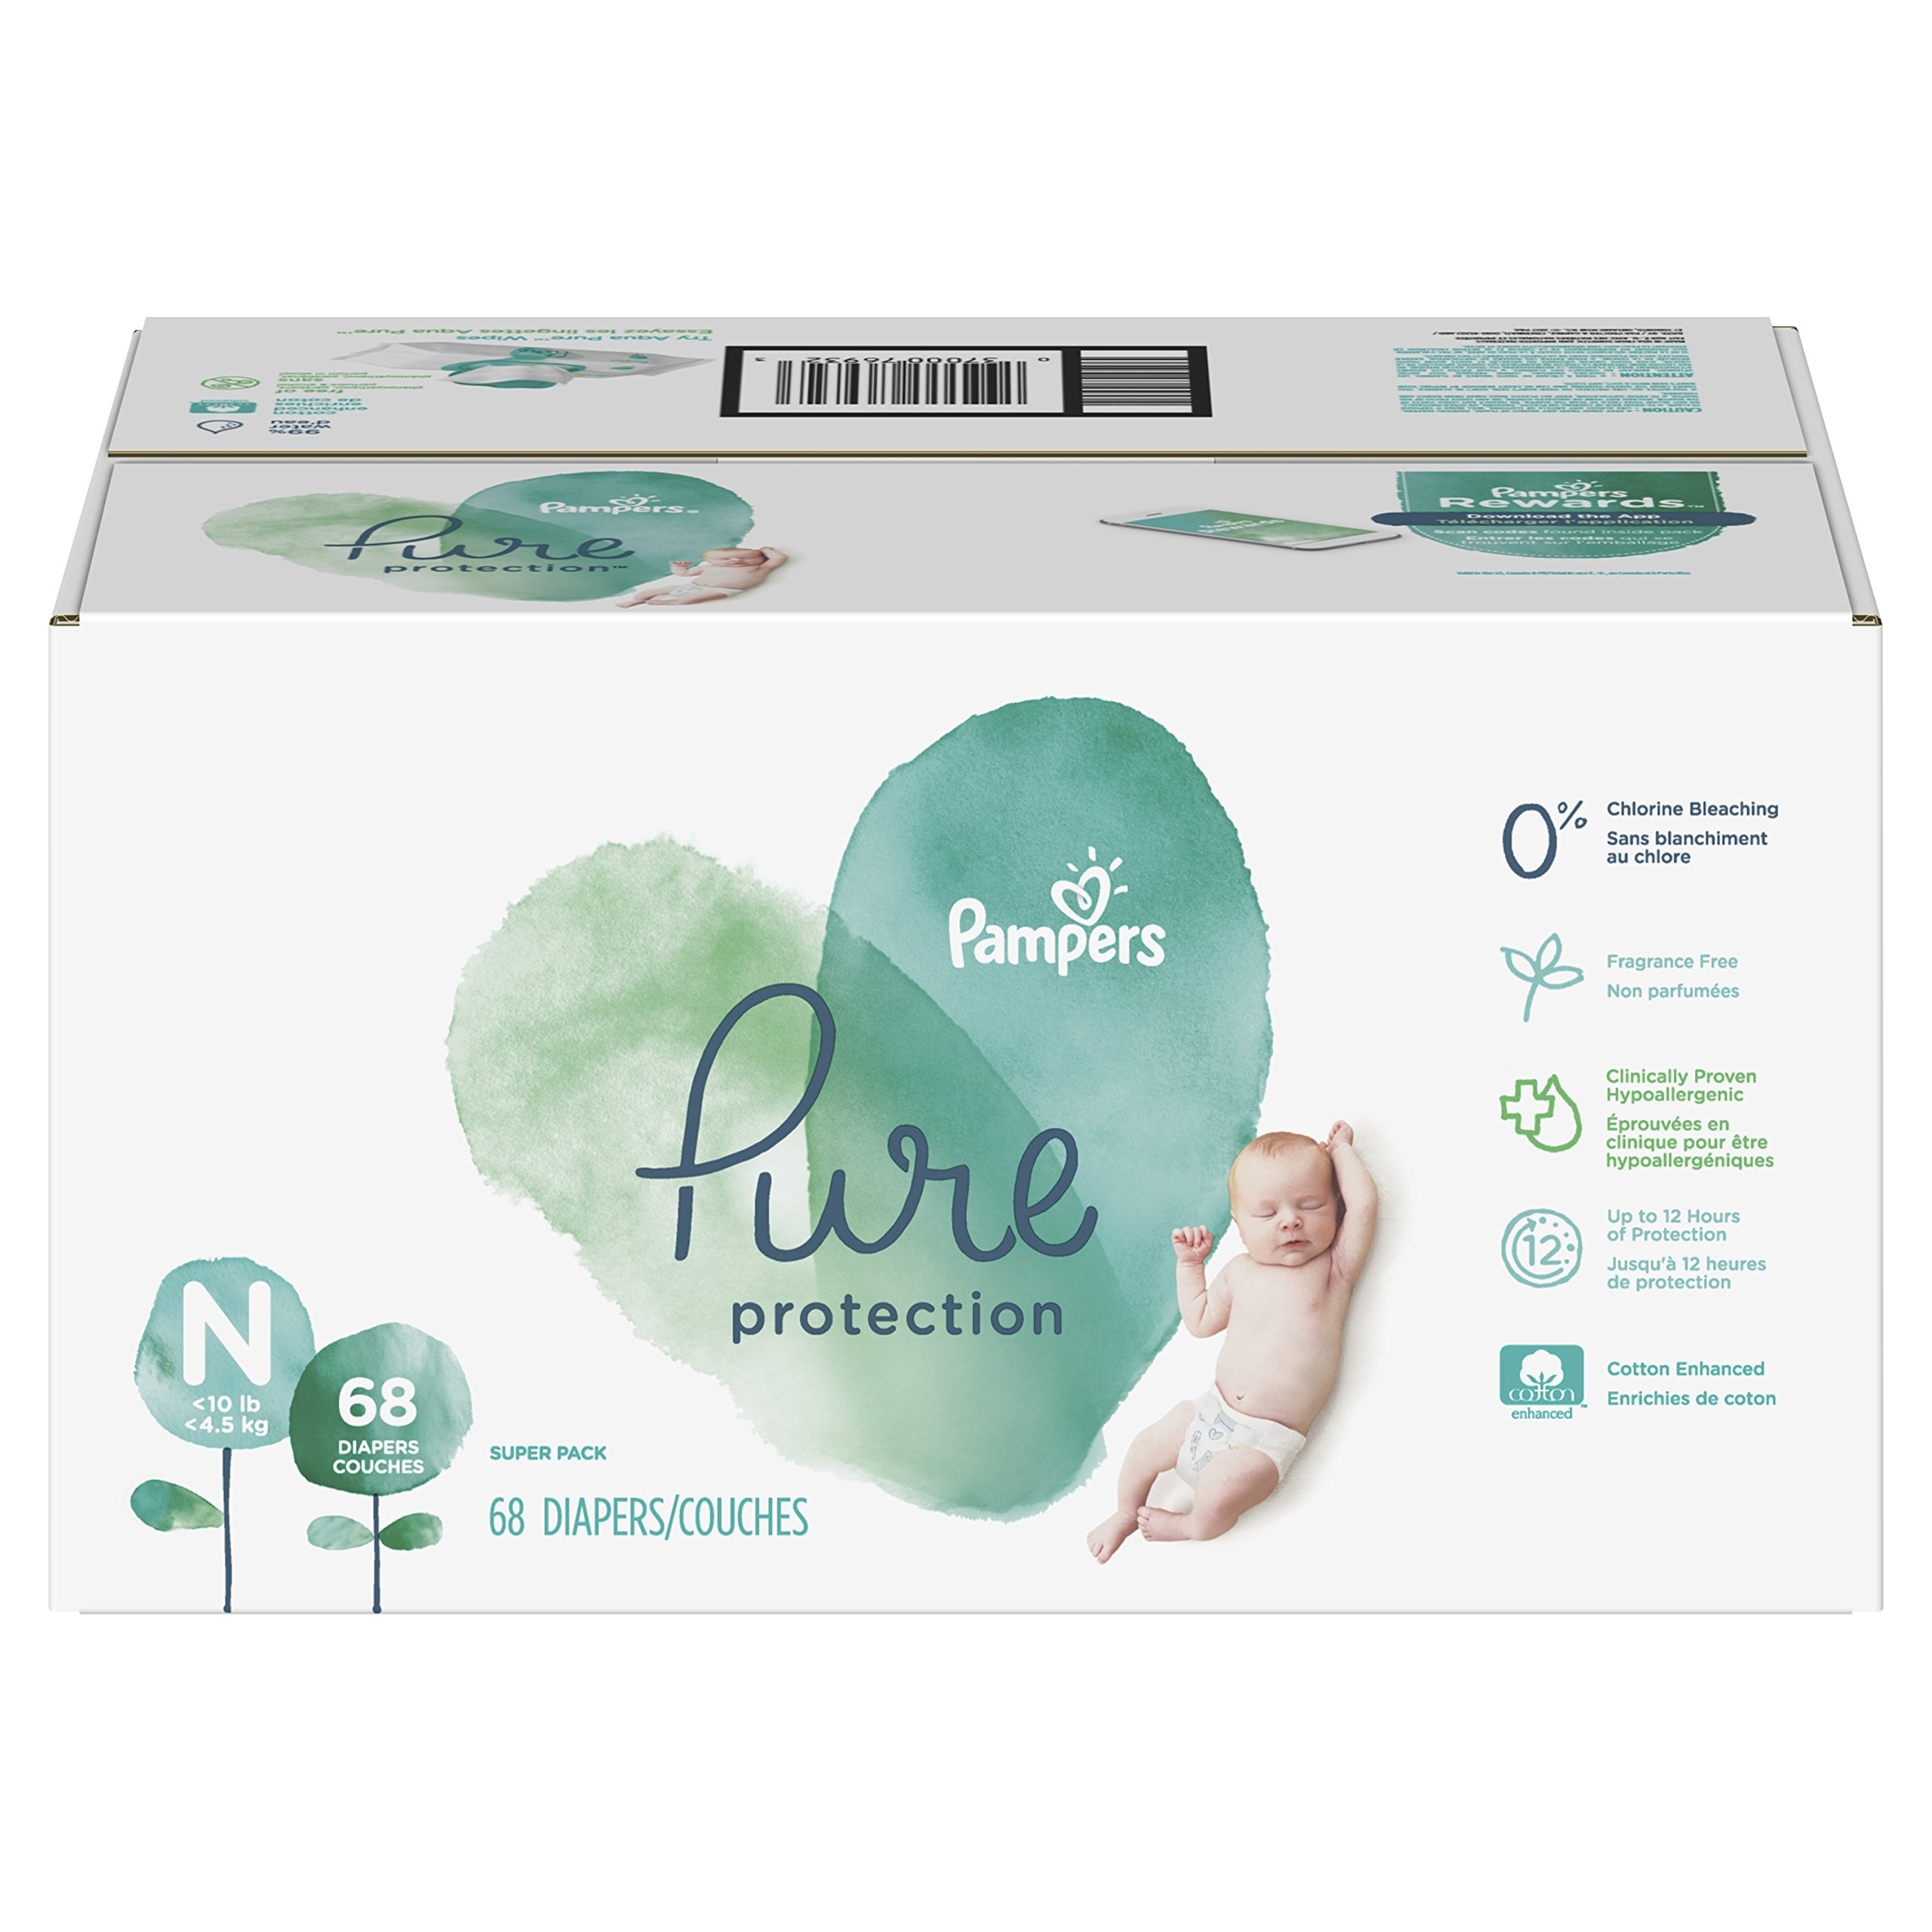 Pampers Pure Protection Newborn Disposable Diapers, Size N (< 10 lb), 68 Count